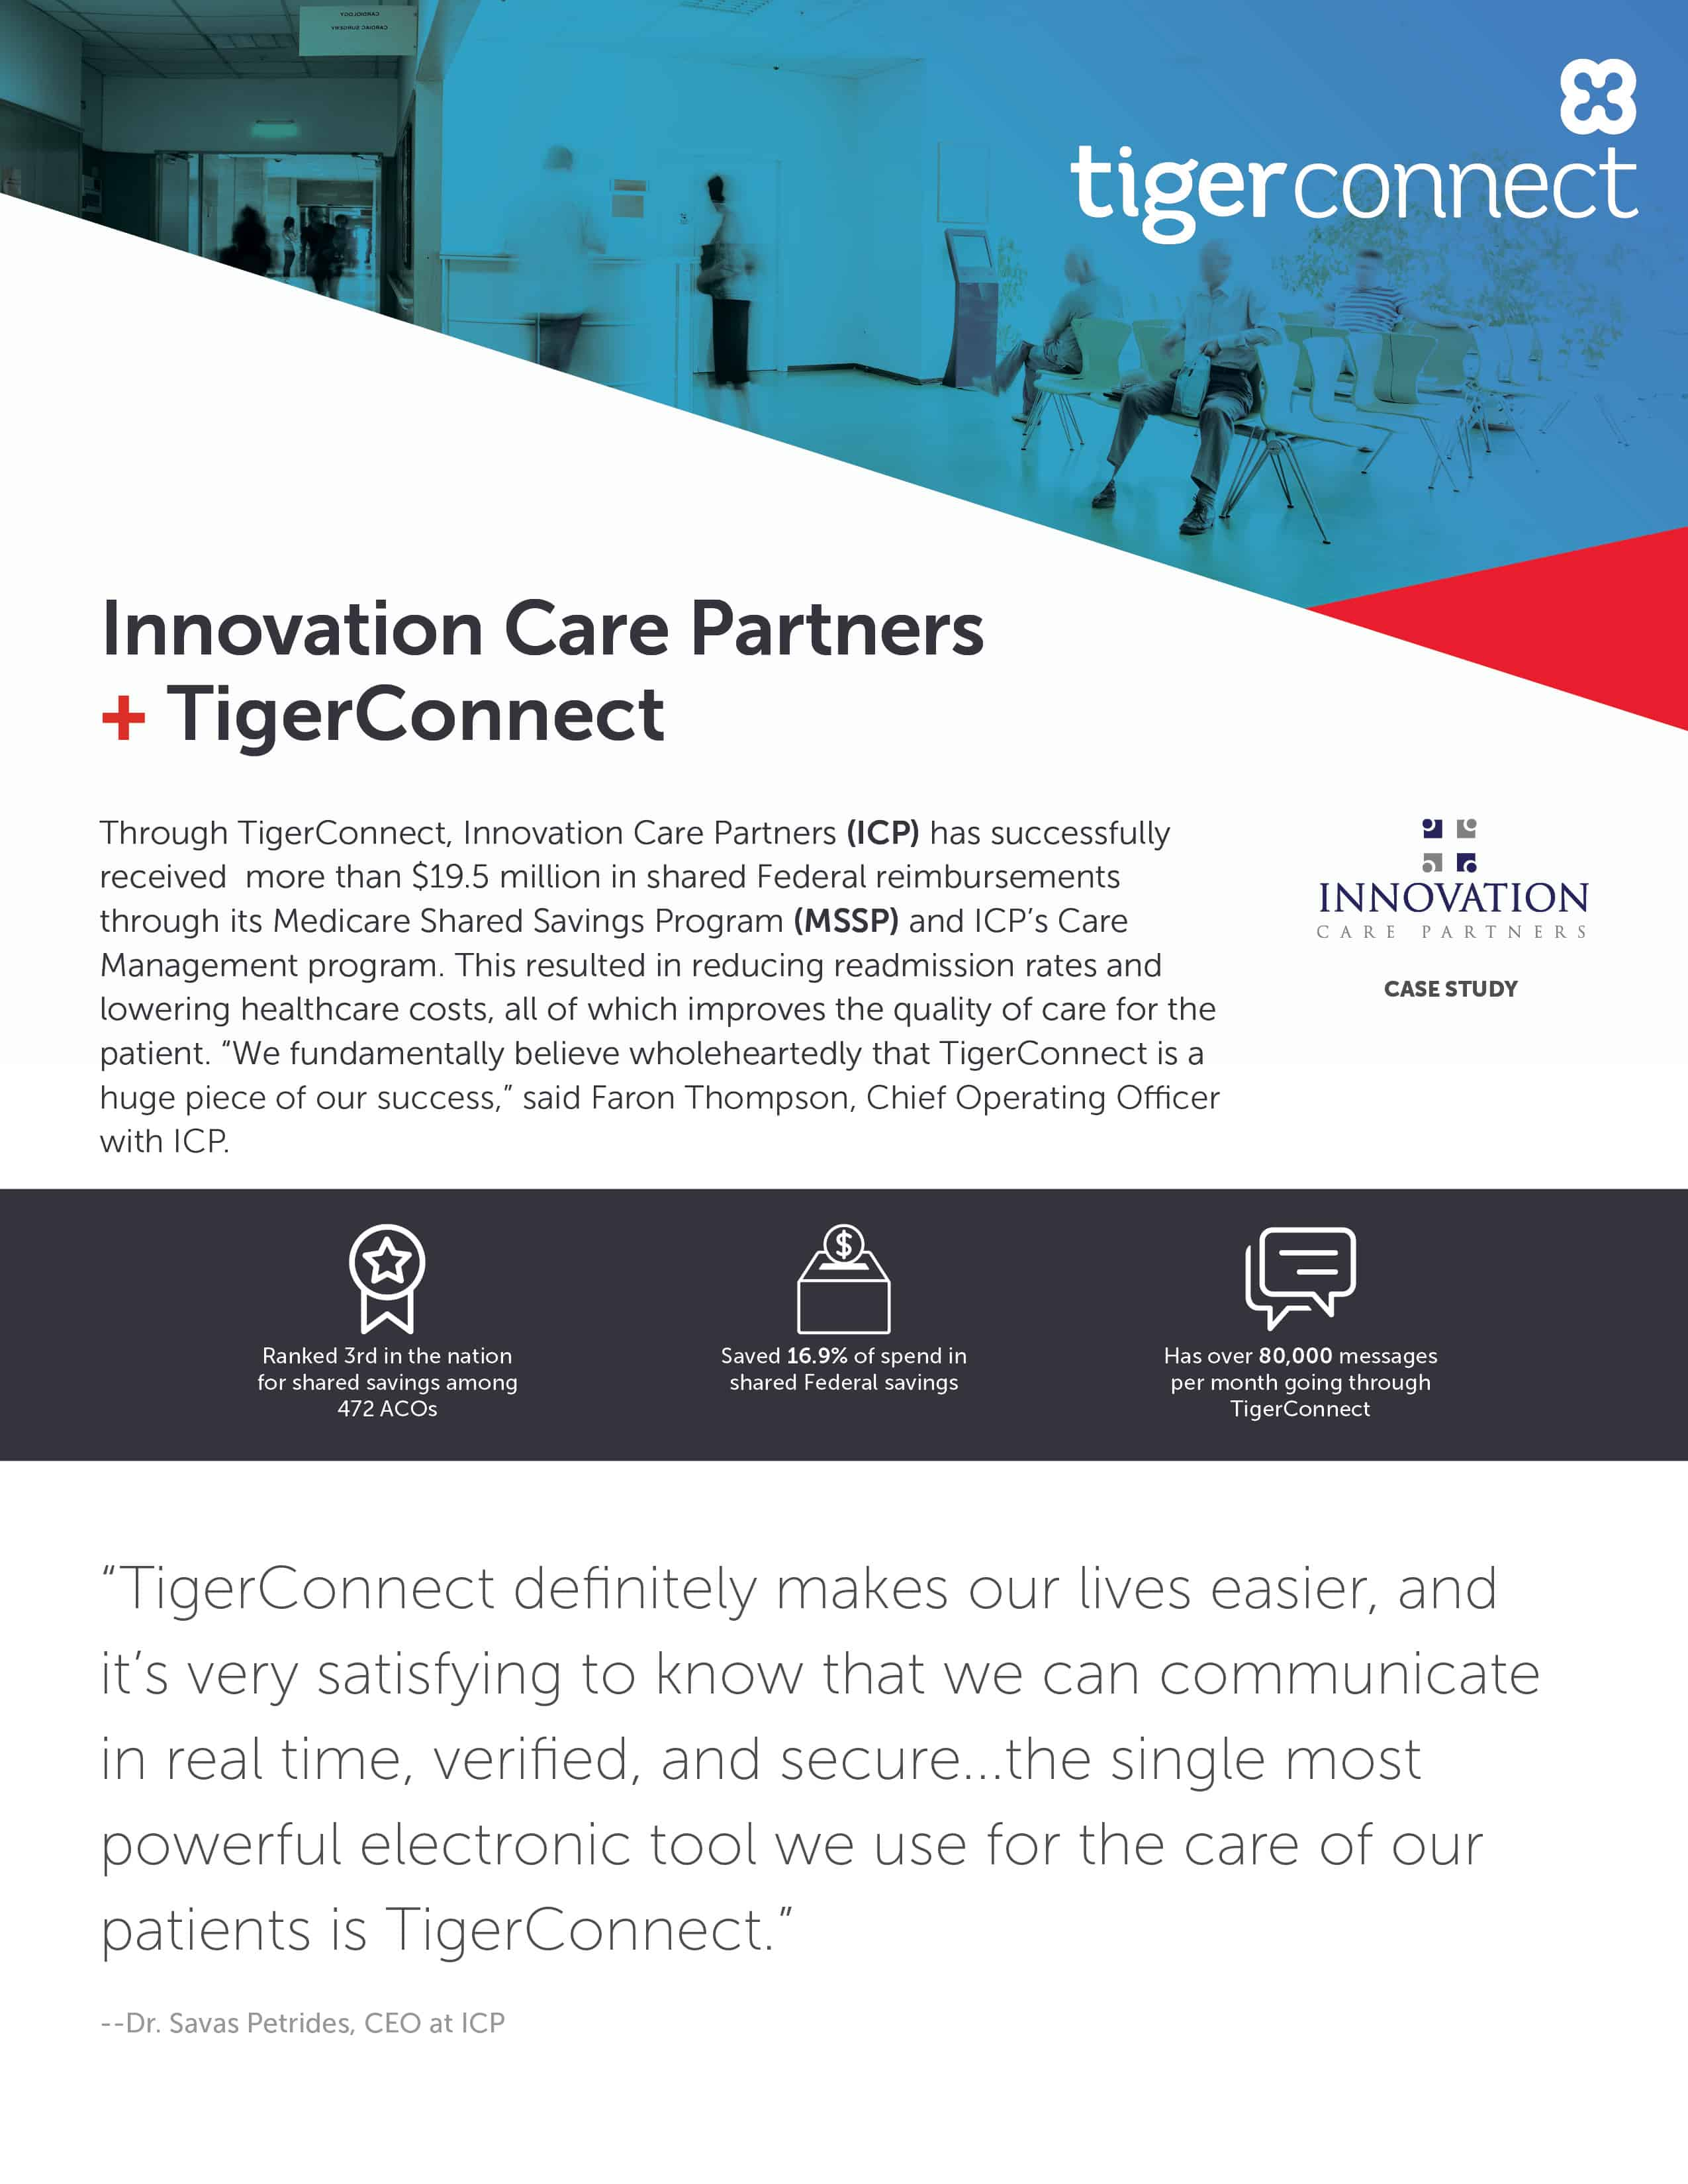 Innovation Care Partners Case Study preview image